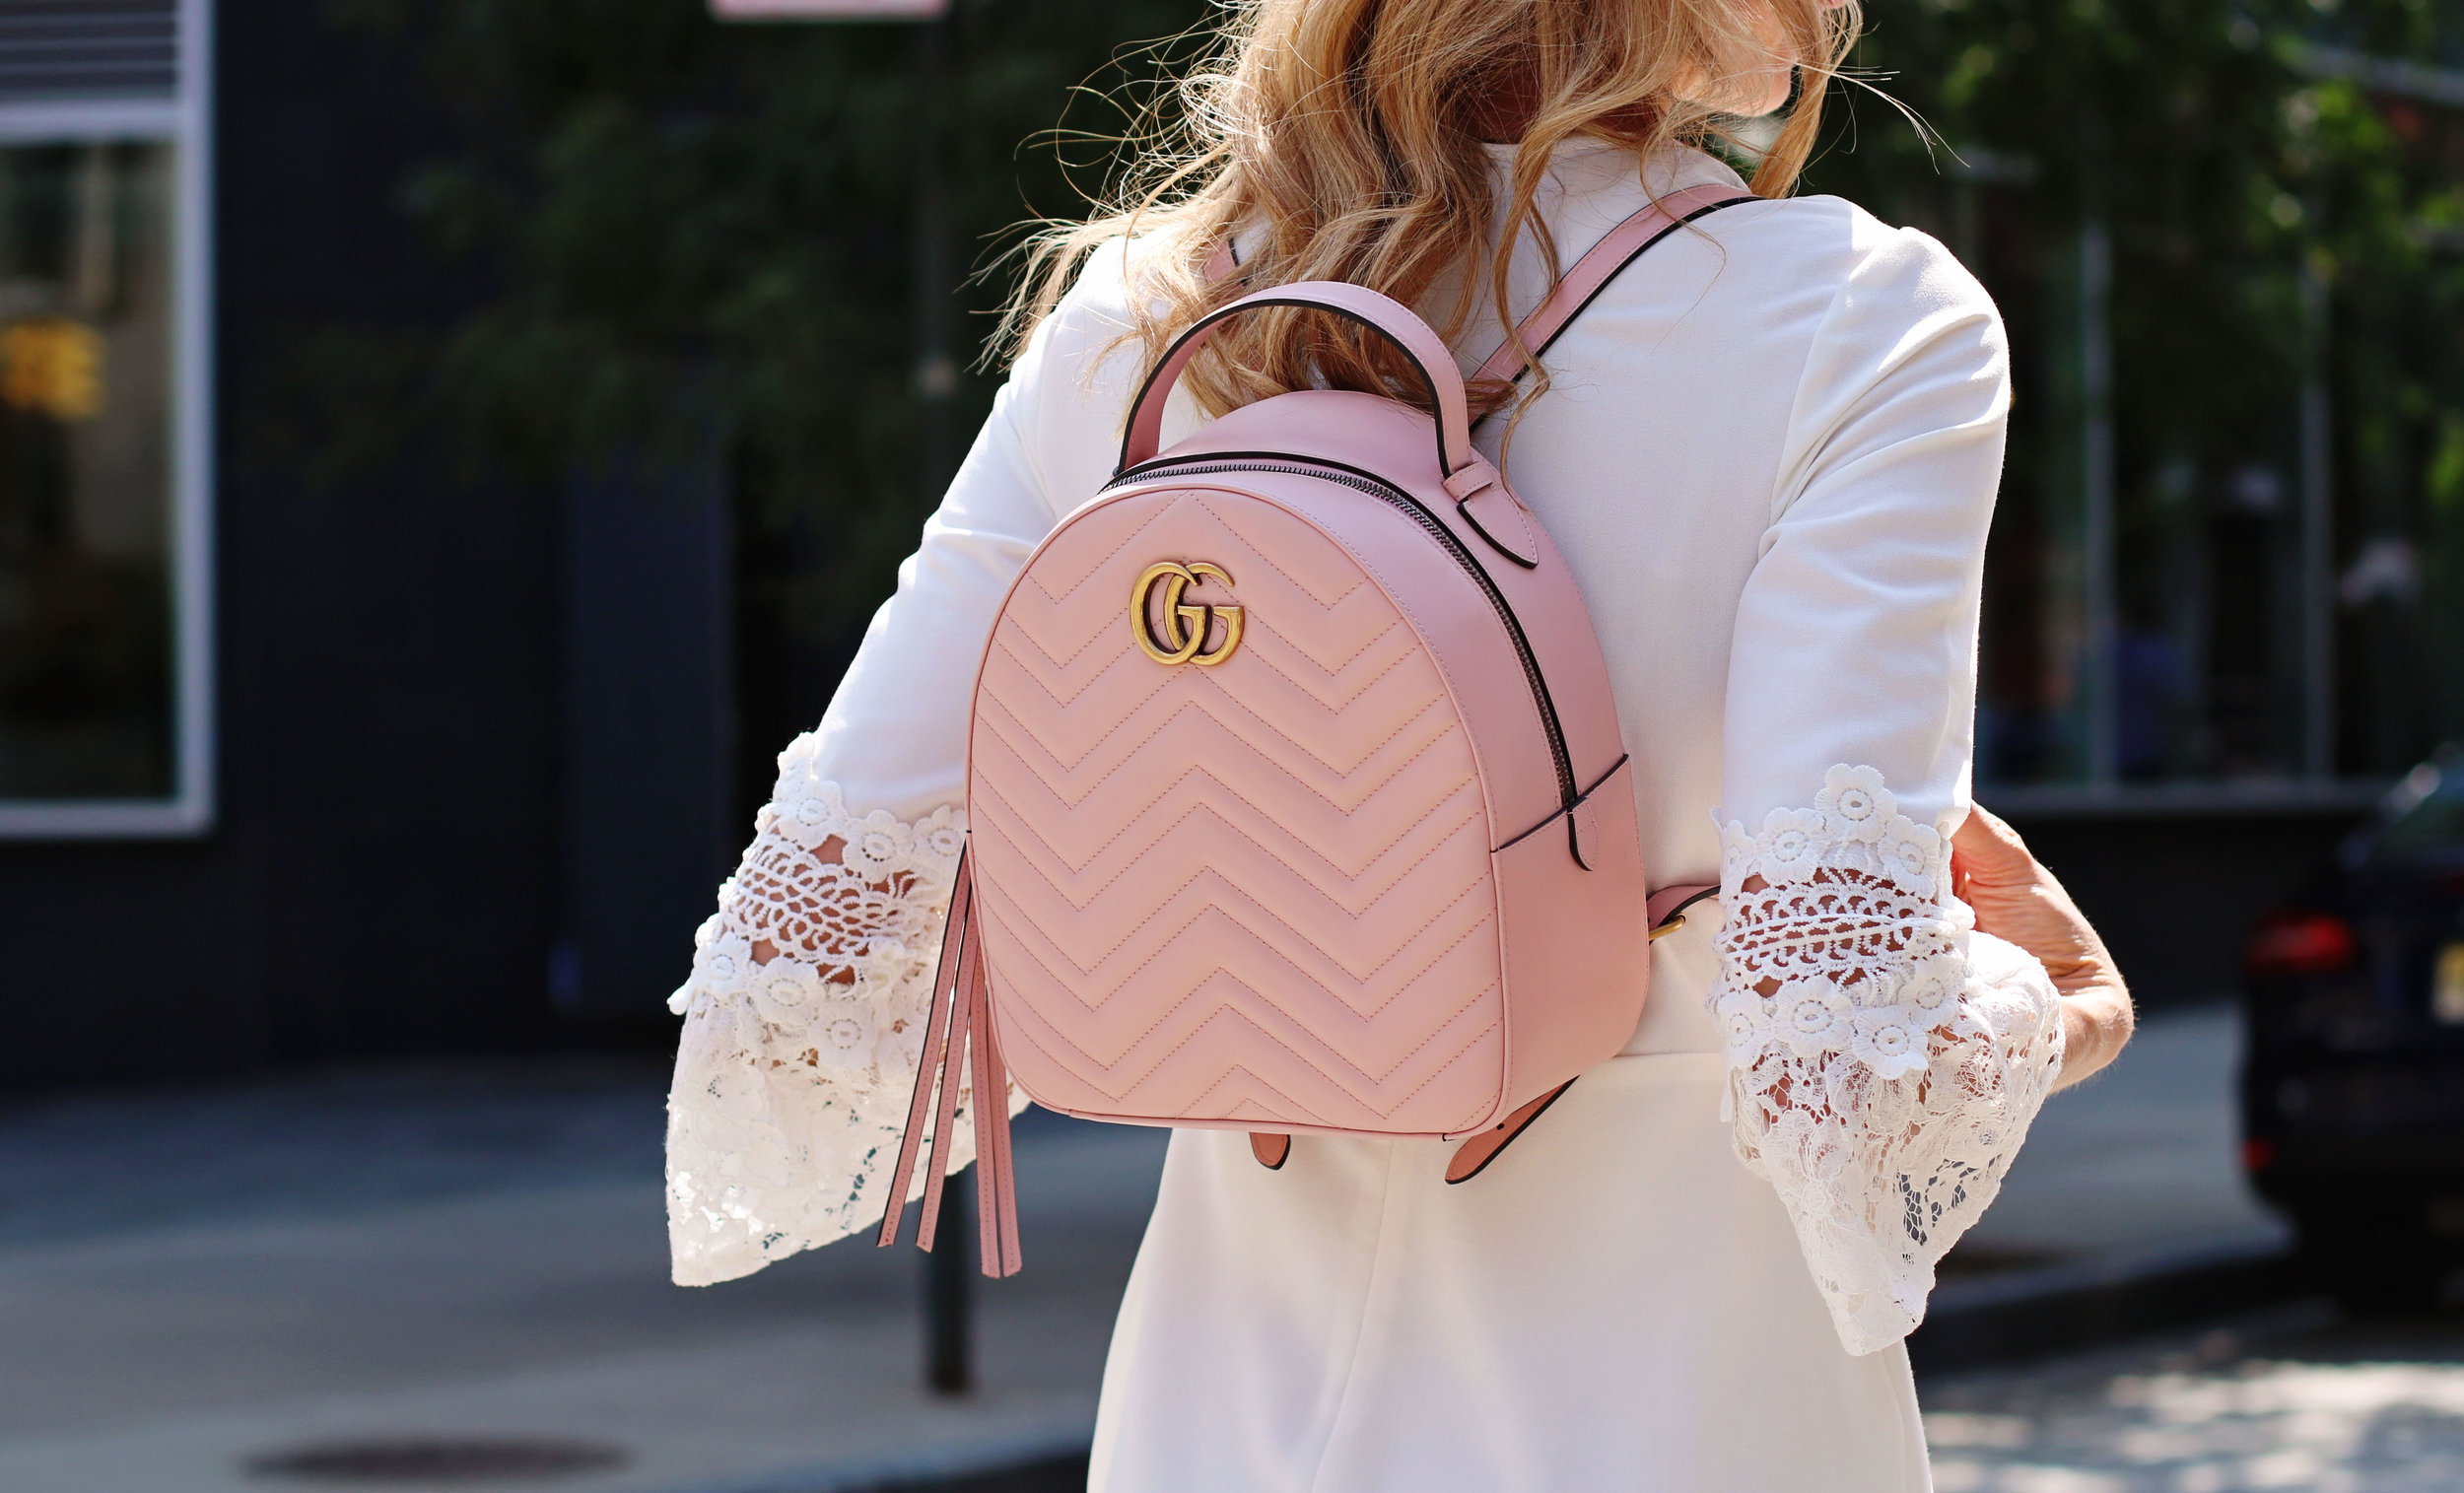 gucci-marmont-pink-blush-backpack-street-style copy.jpg